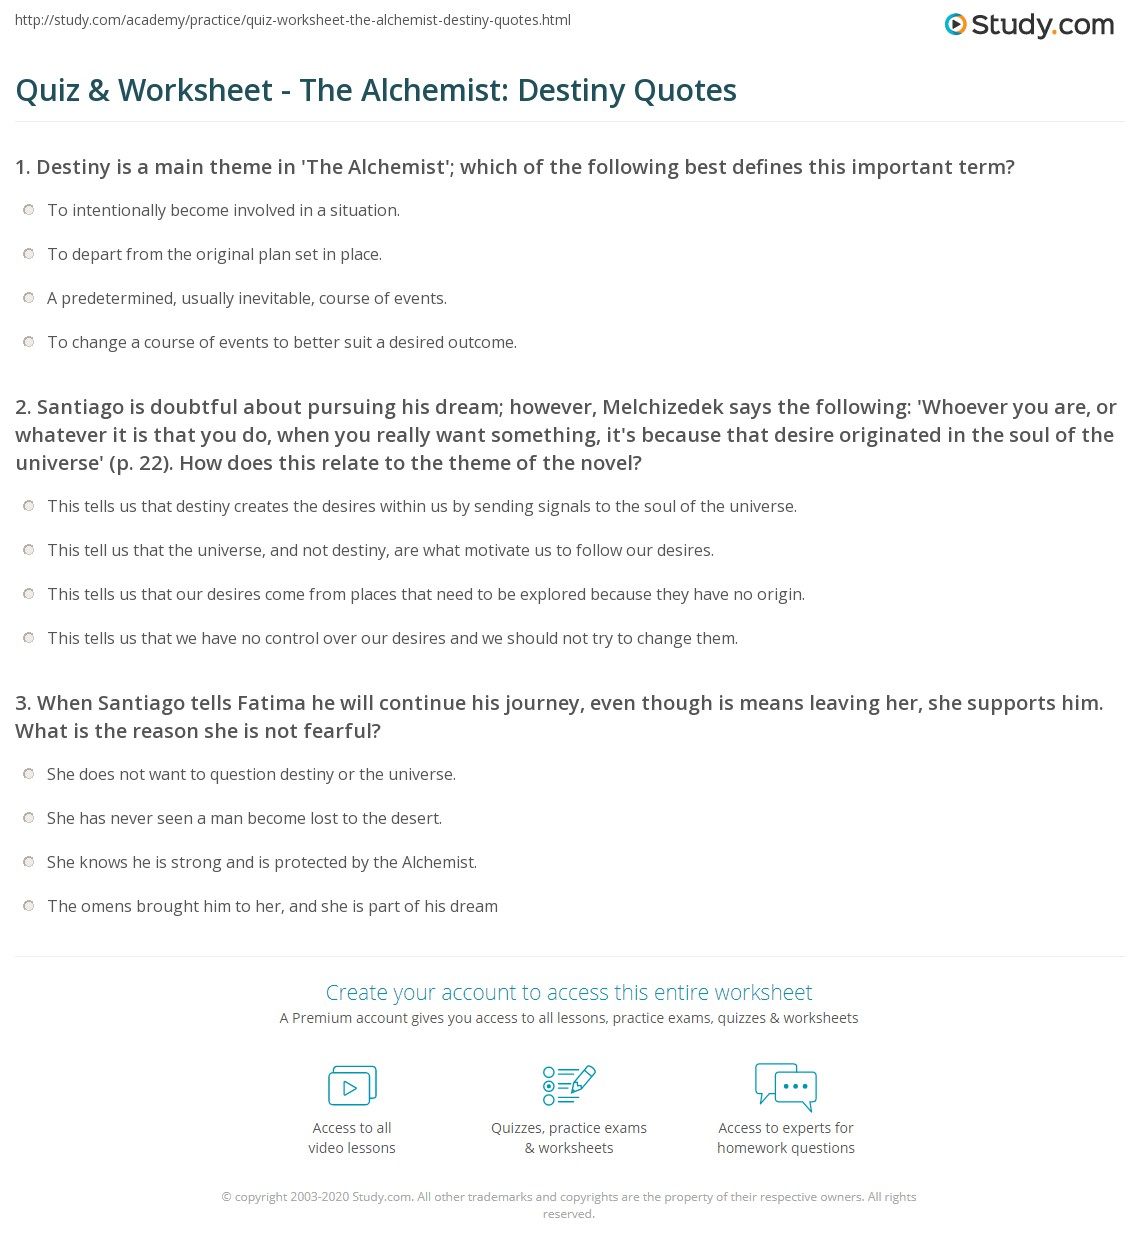 quiz worksheet the alchemist destiny quotes com santiago is doubtful about pursuing his dream however melchizedek says the following whoever you are or whatever it is that you do when you really